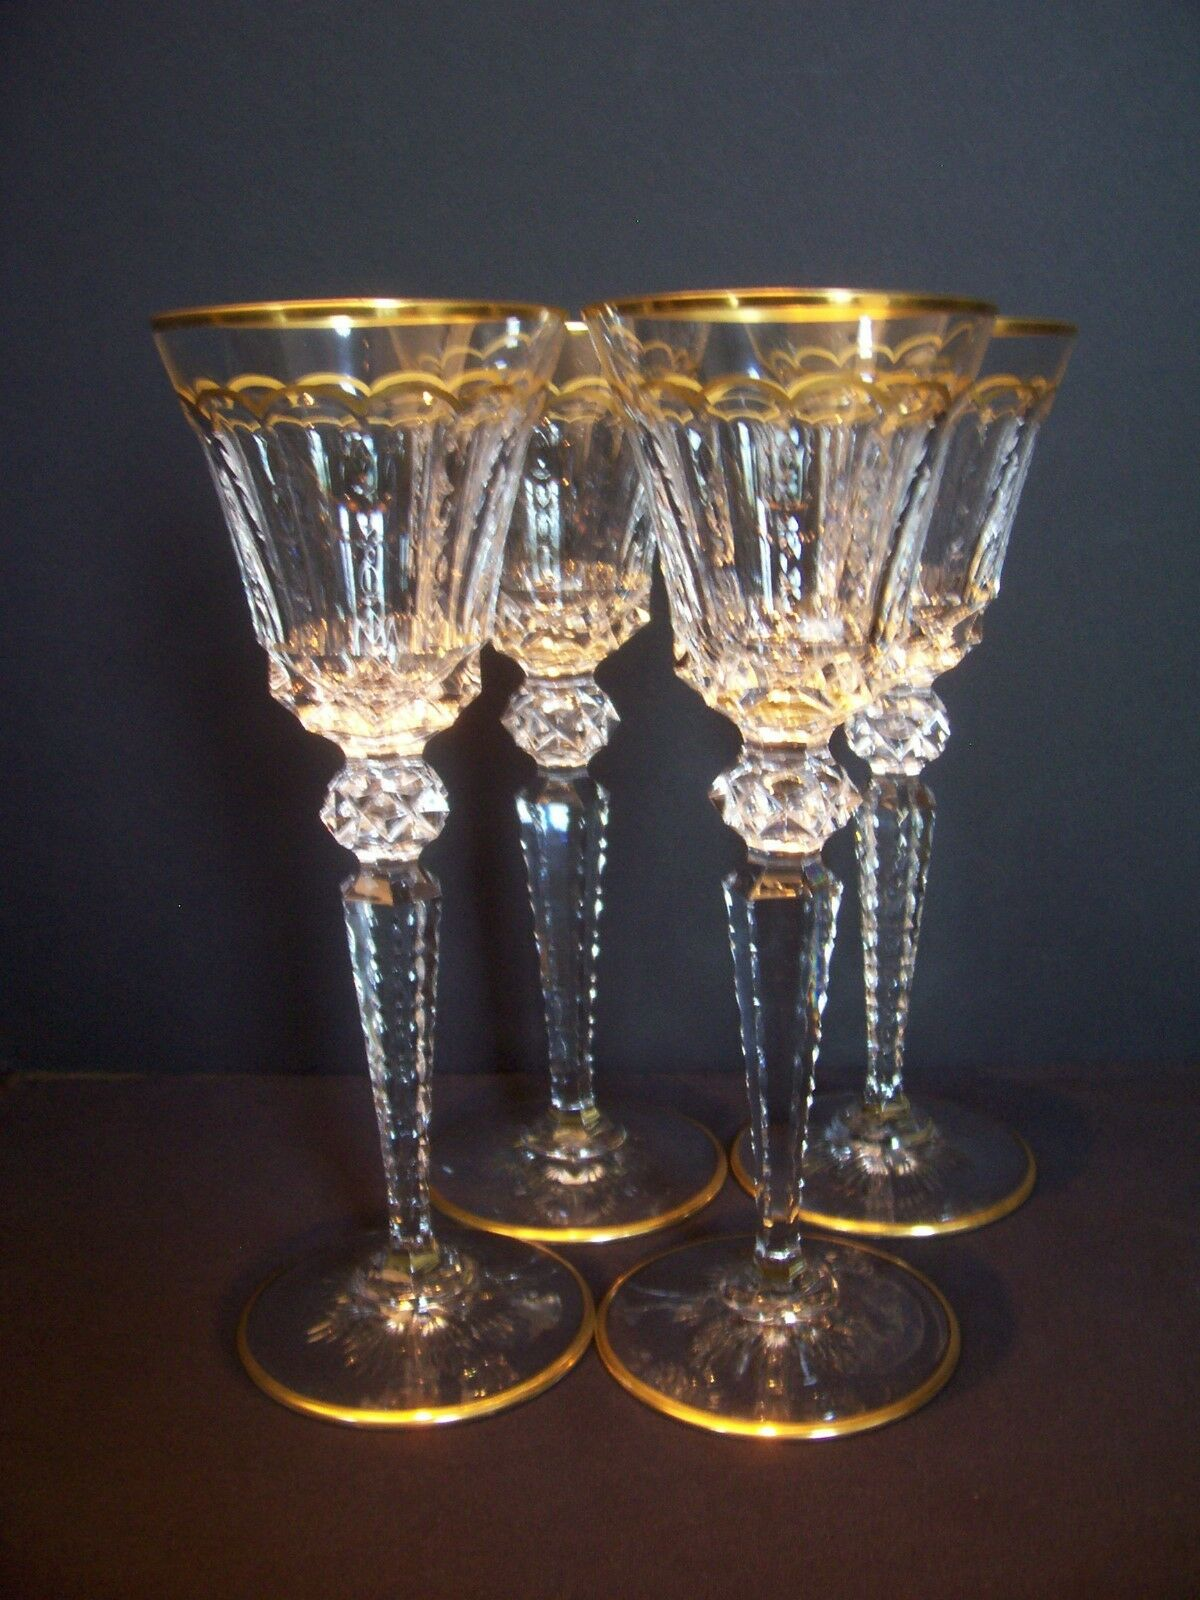 Купить ONE GOLD ENCRUSTED SAINT LOUIS CRYSTAL GOBLET EXCELLENCE PATTERN 9 3/4 SIGN